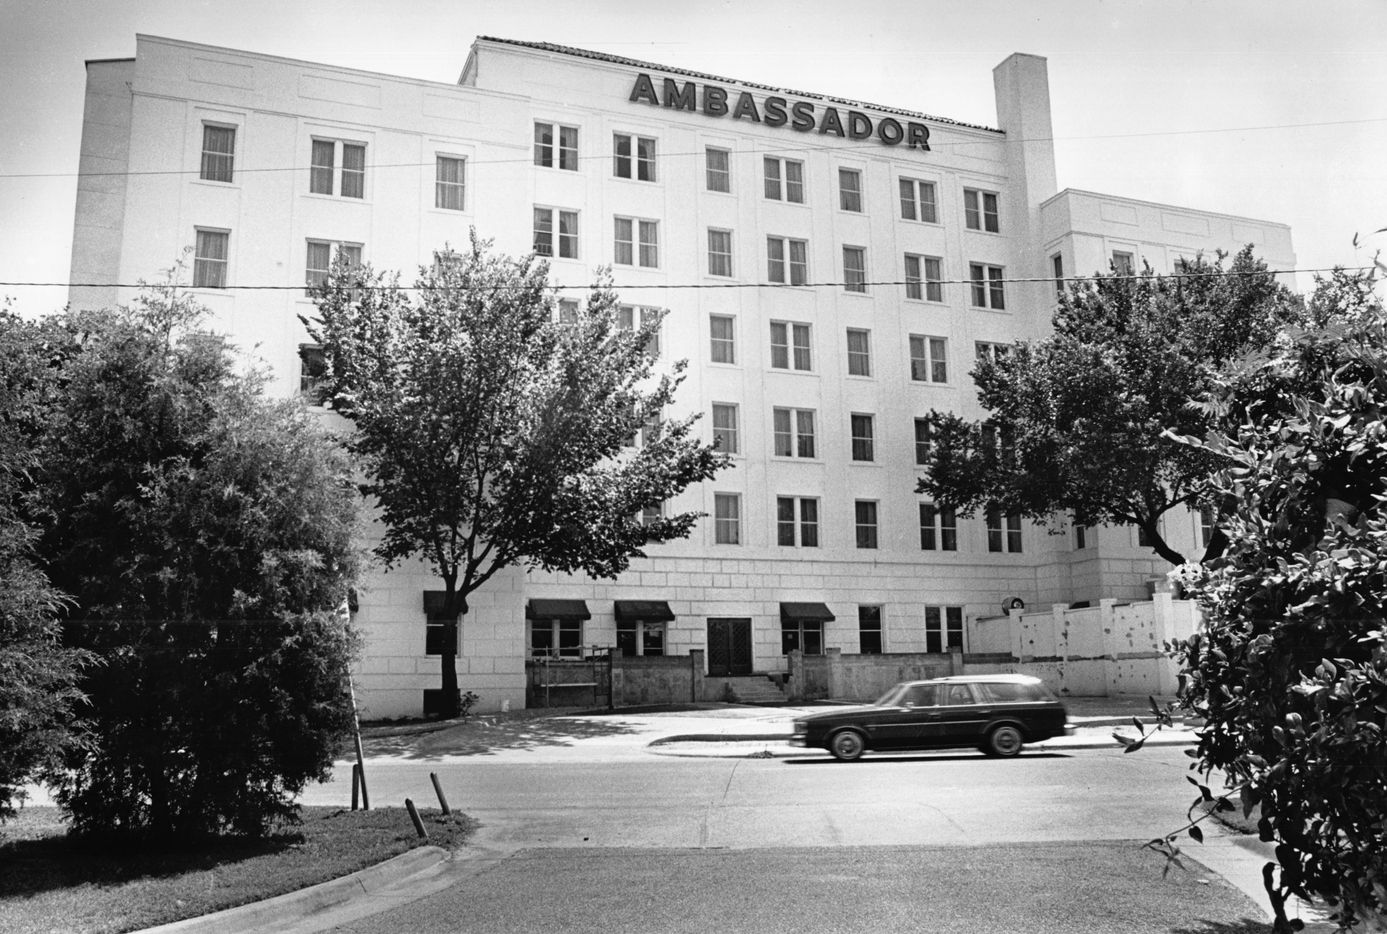 The Ambassador Hotel, seen in July 1983.